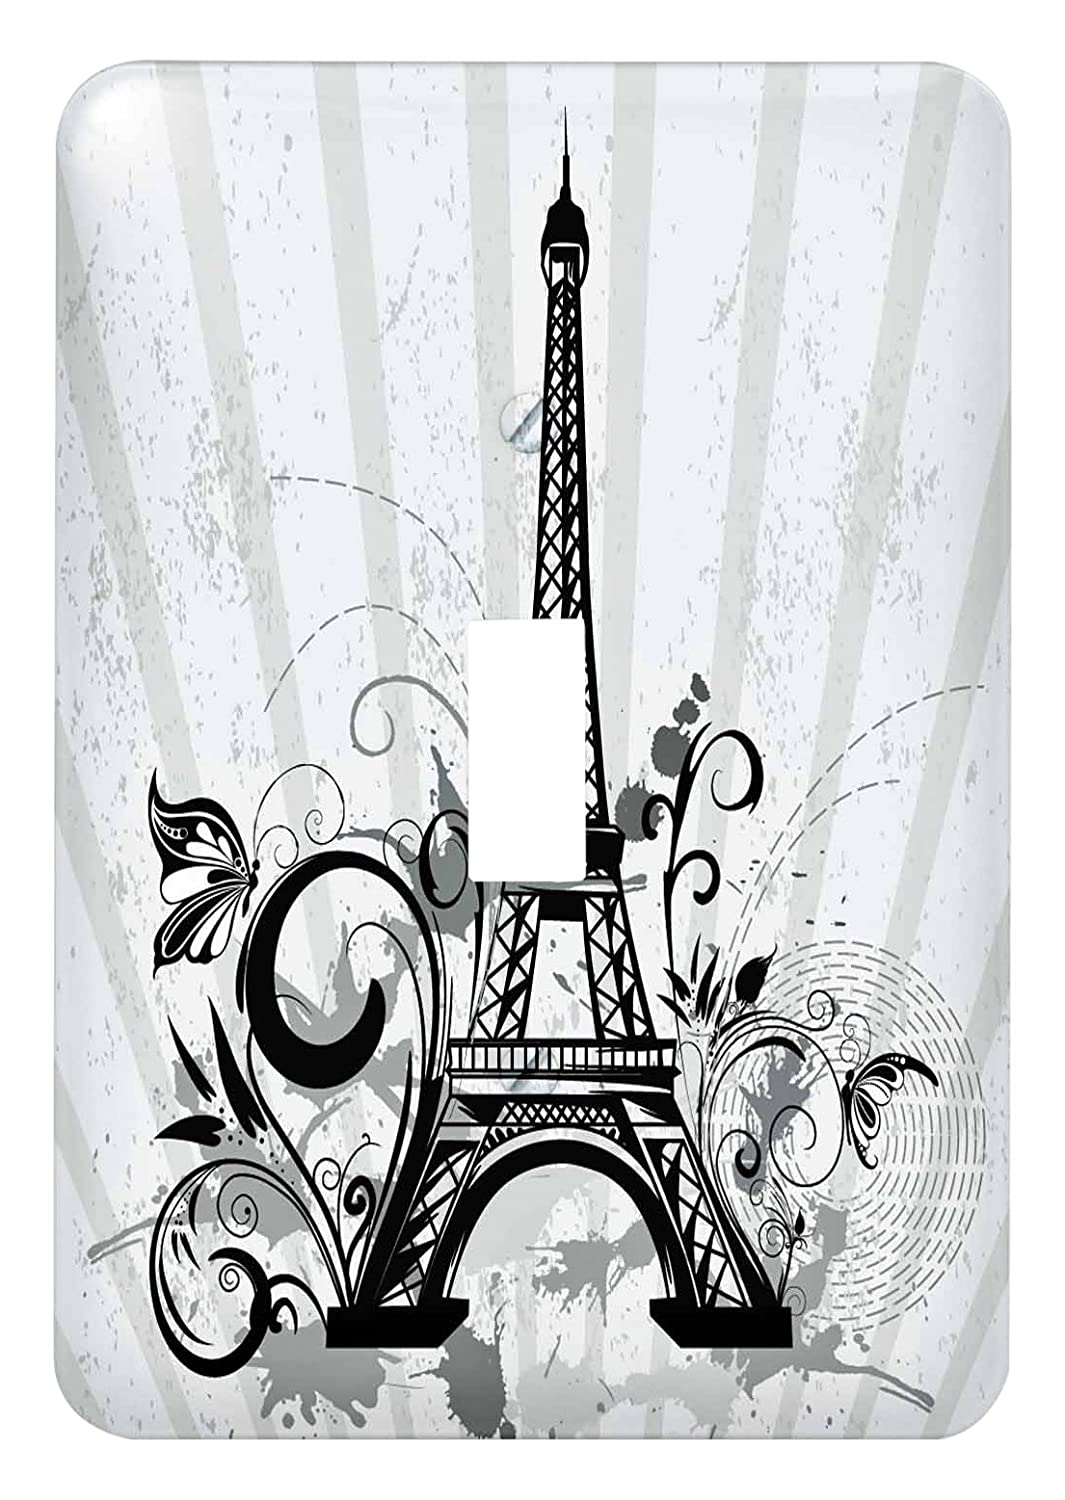 3dRose lsp_217722_1 Black and Steel Blue Eiffel Tower with Flourishes and Butterflies - single Toggle Switch